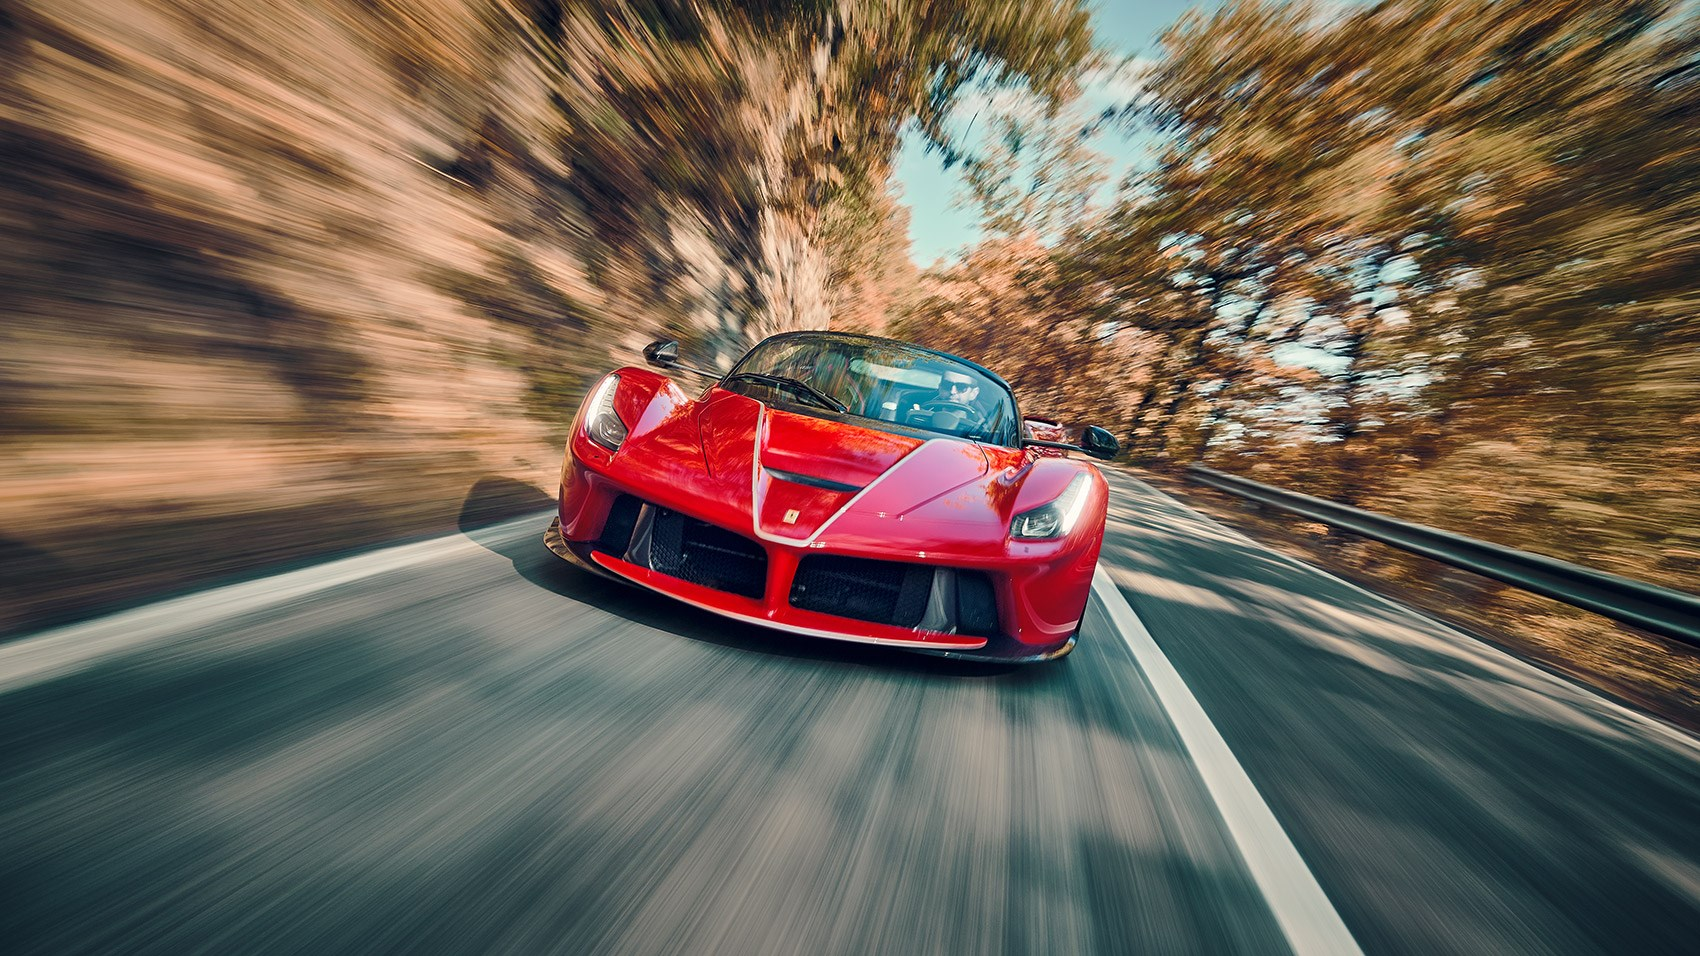 LaFerrari Ferrari - a worthy successor to the Enzo